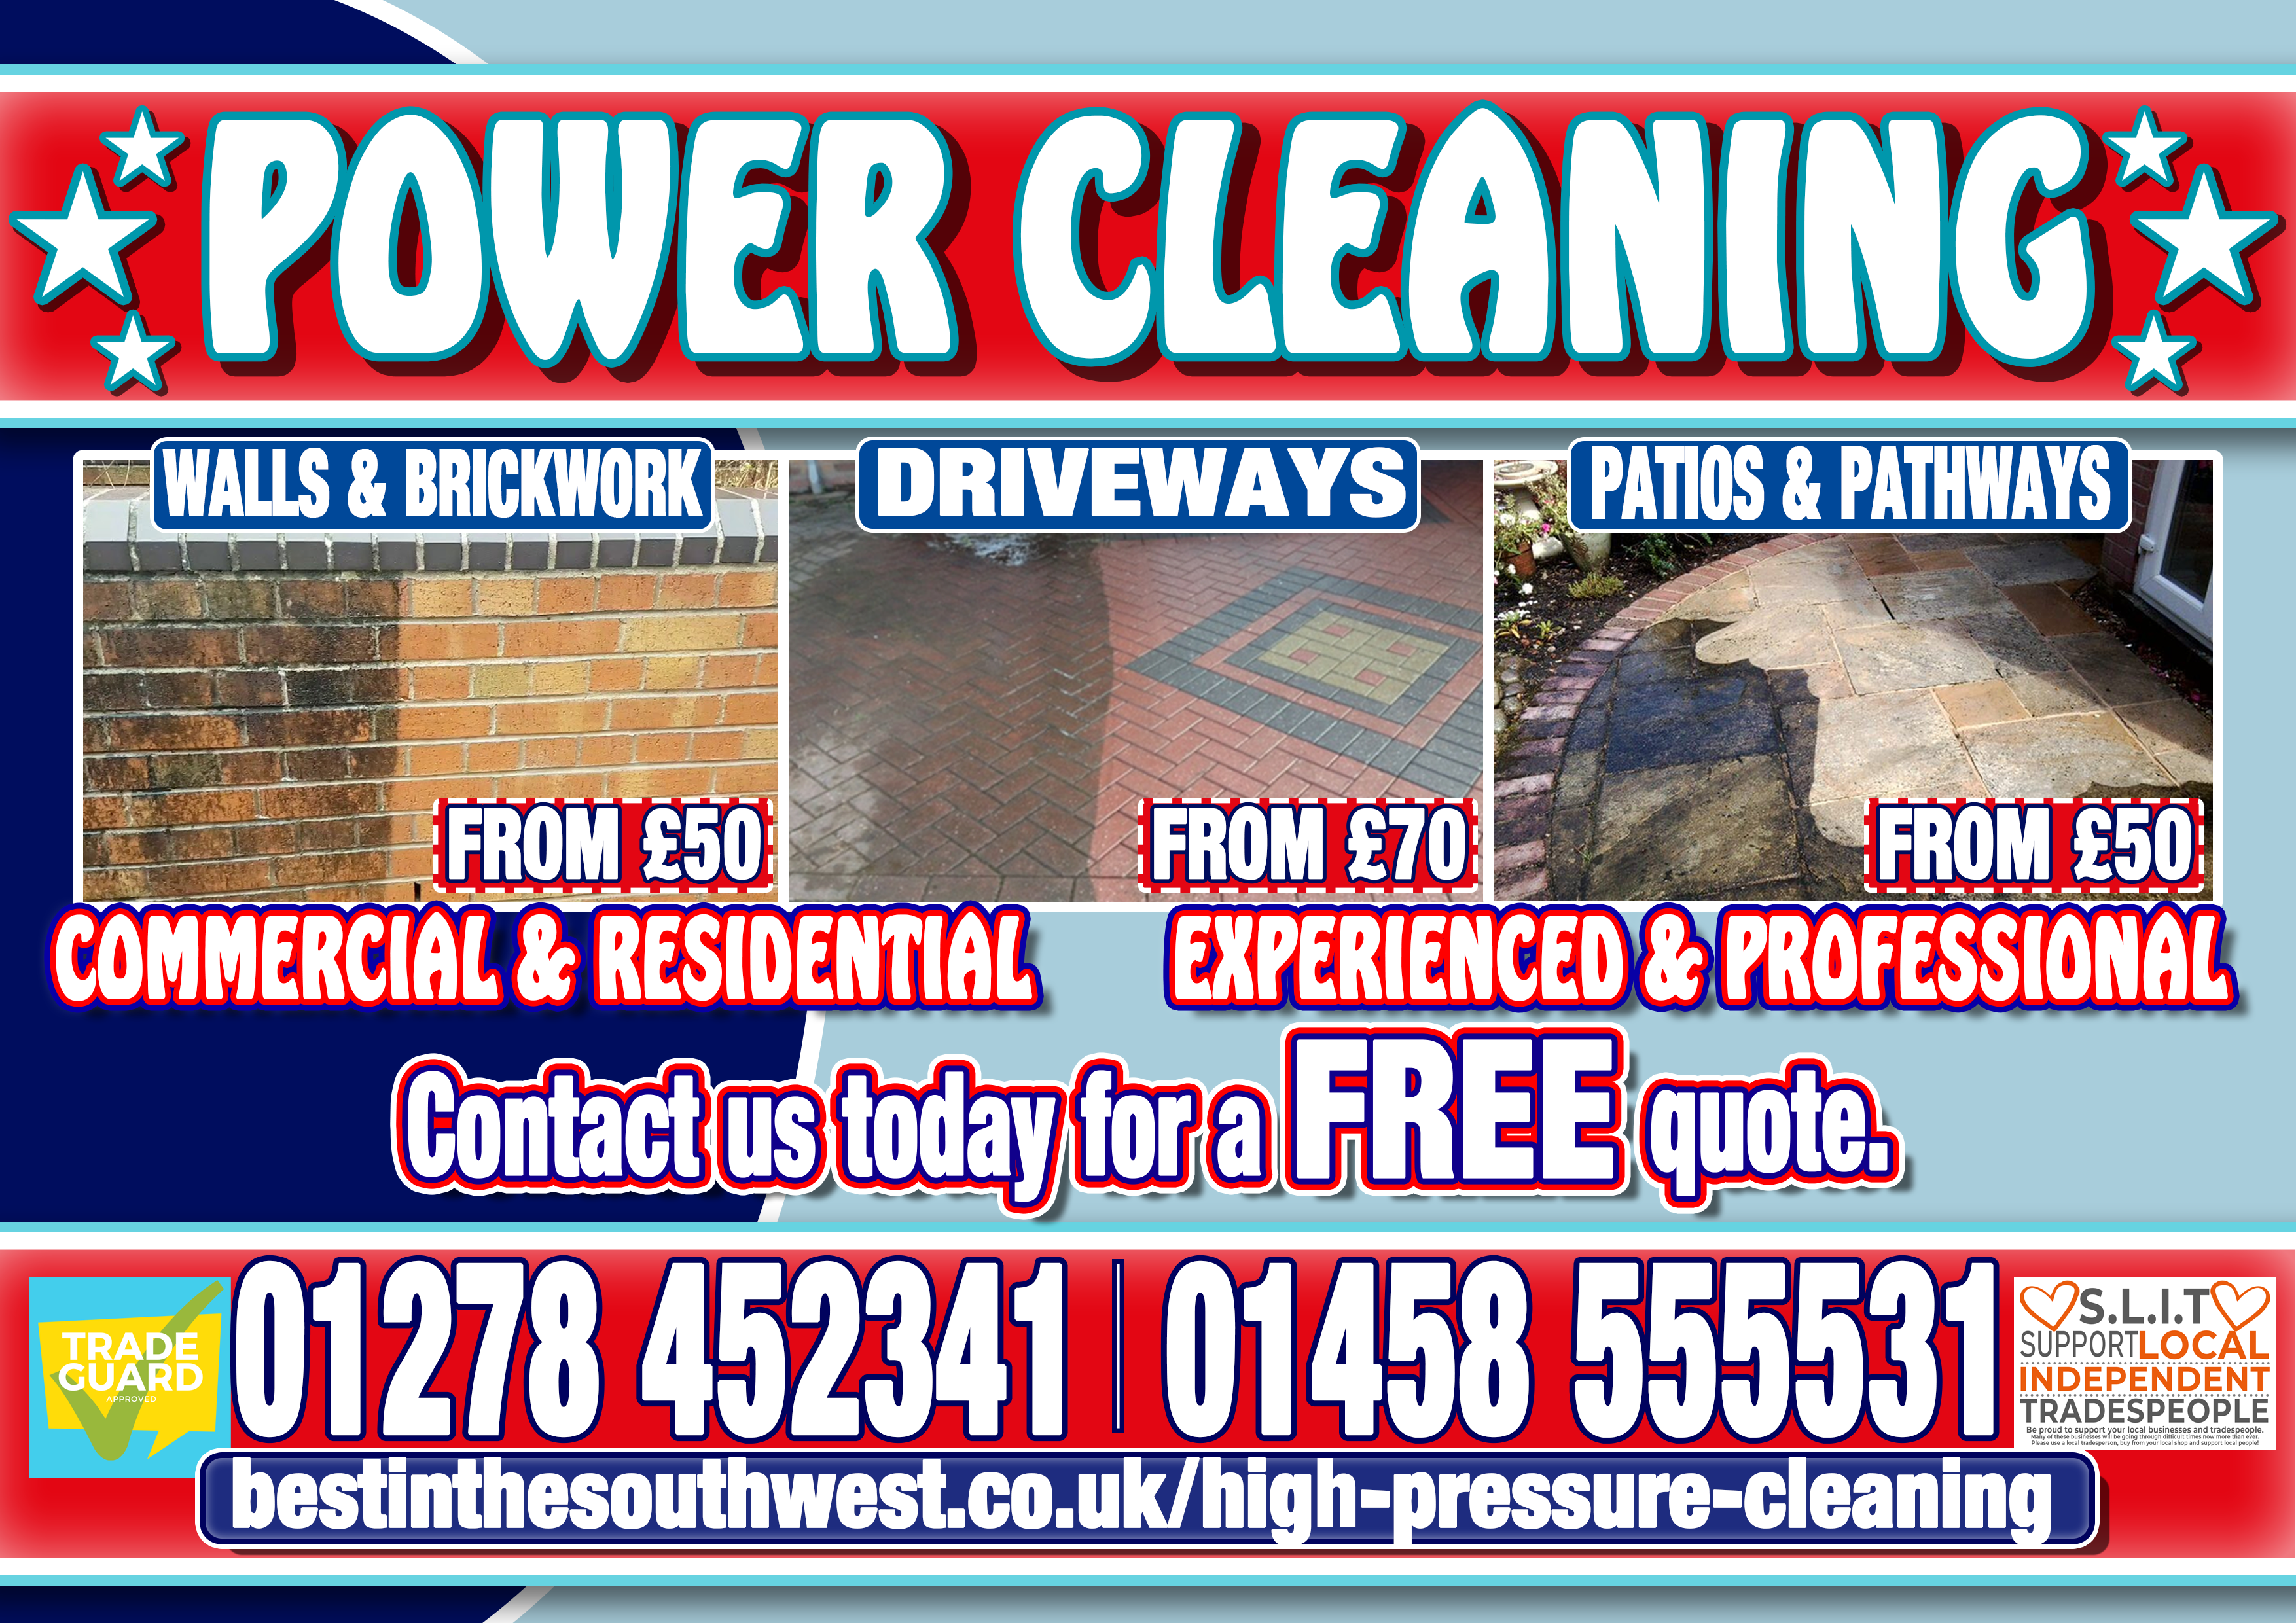 Power Cleaning flyer front